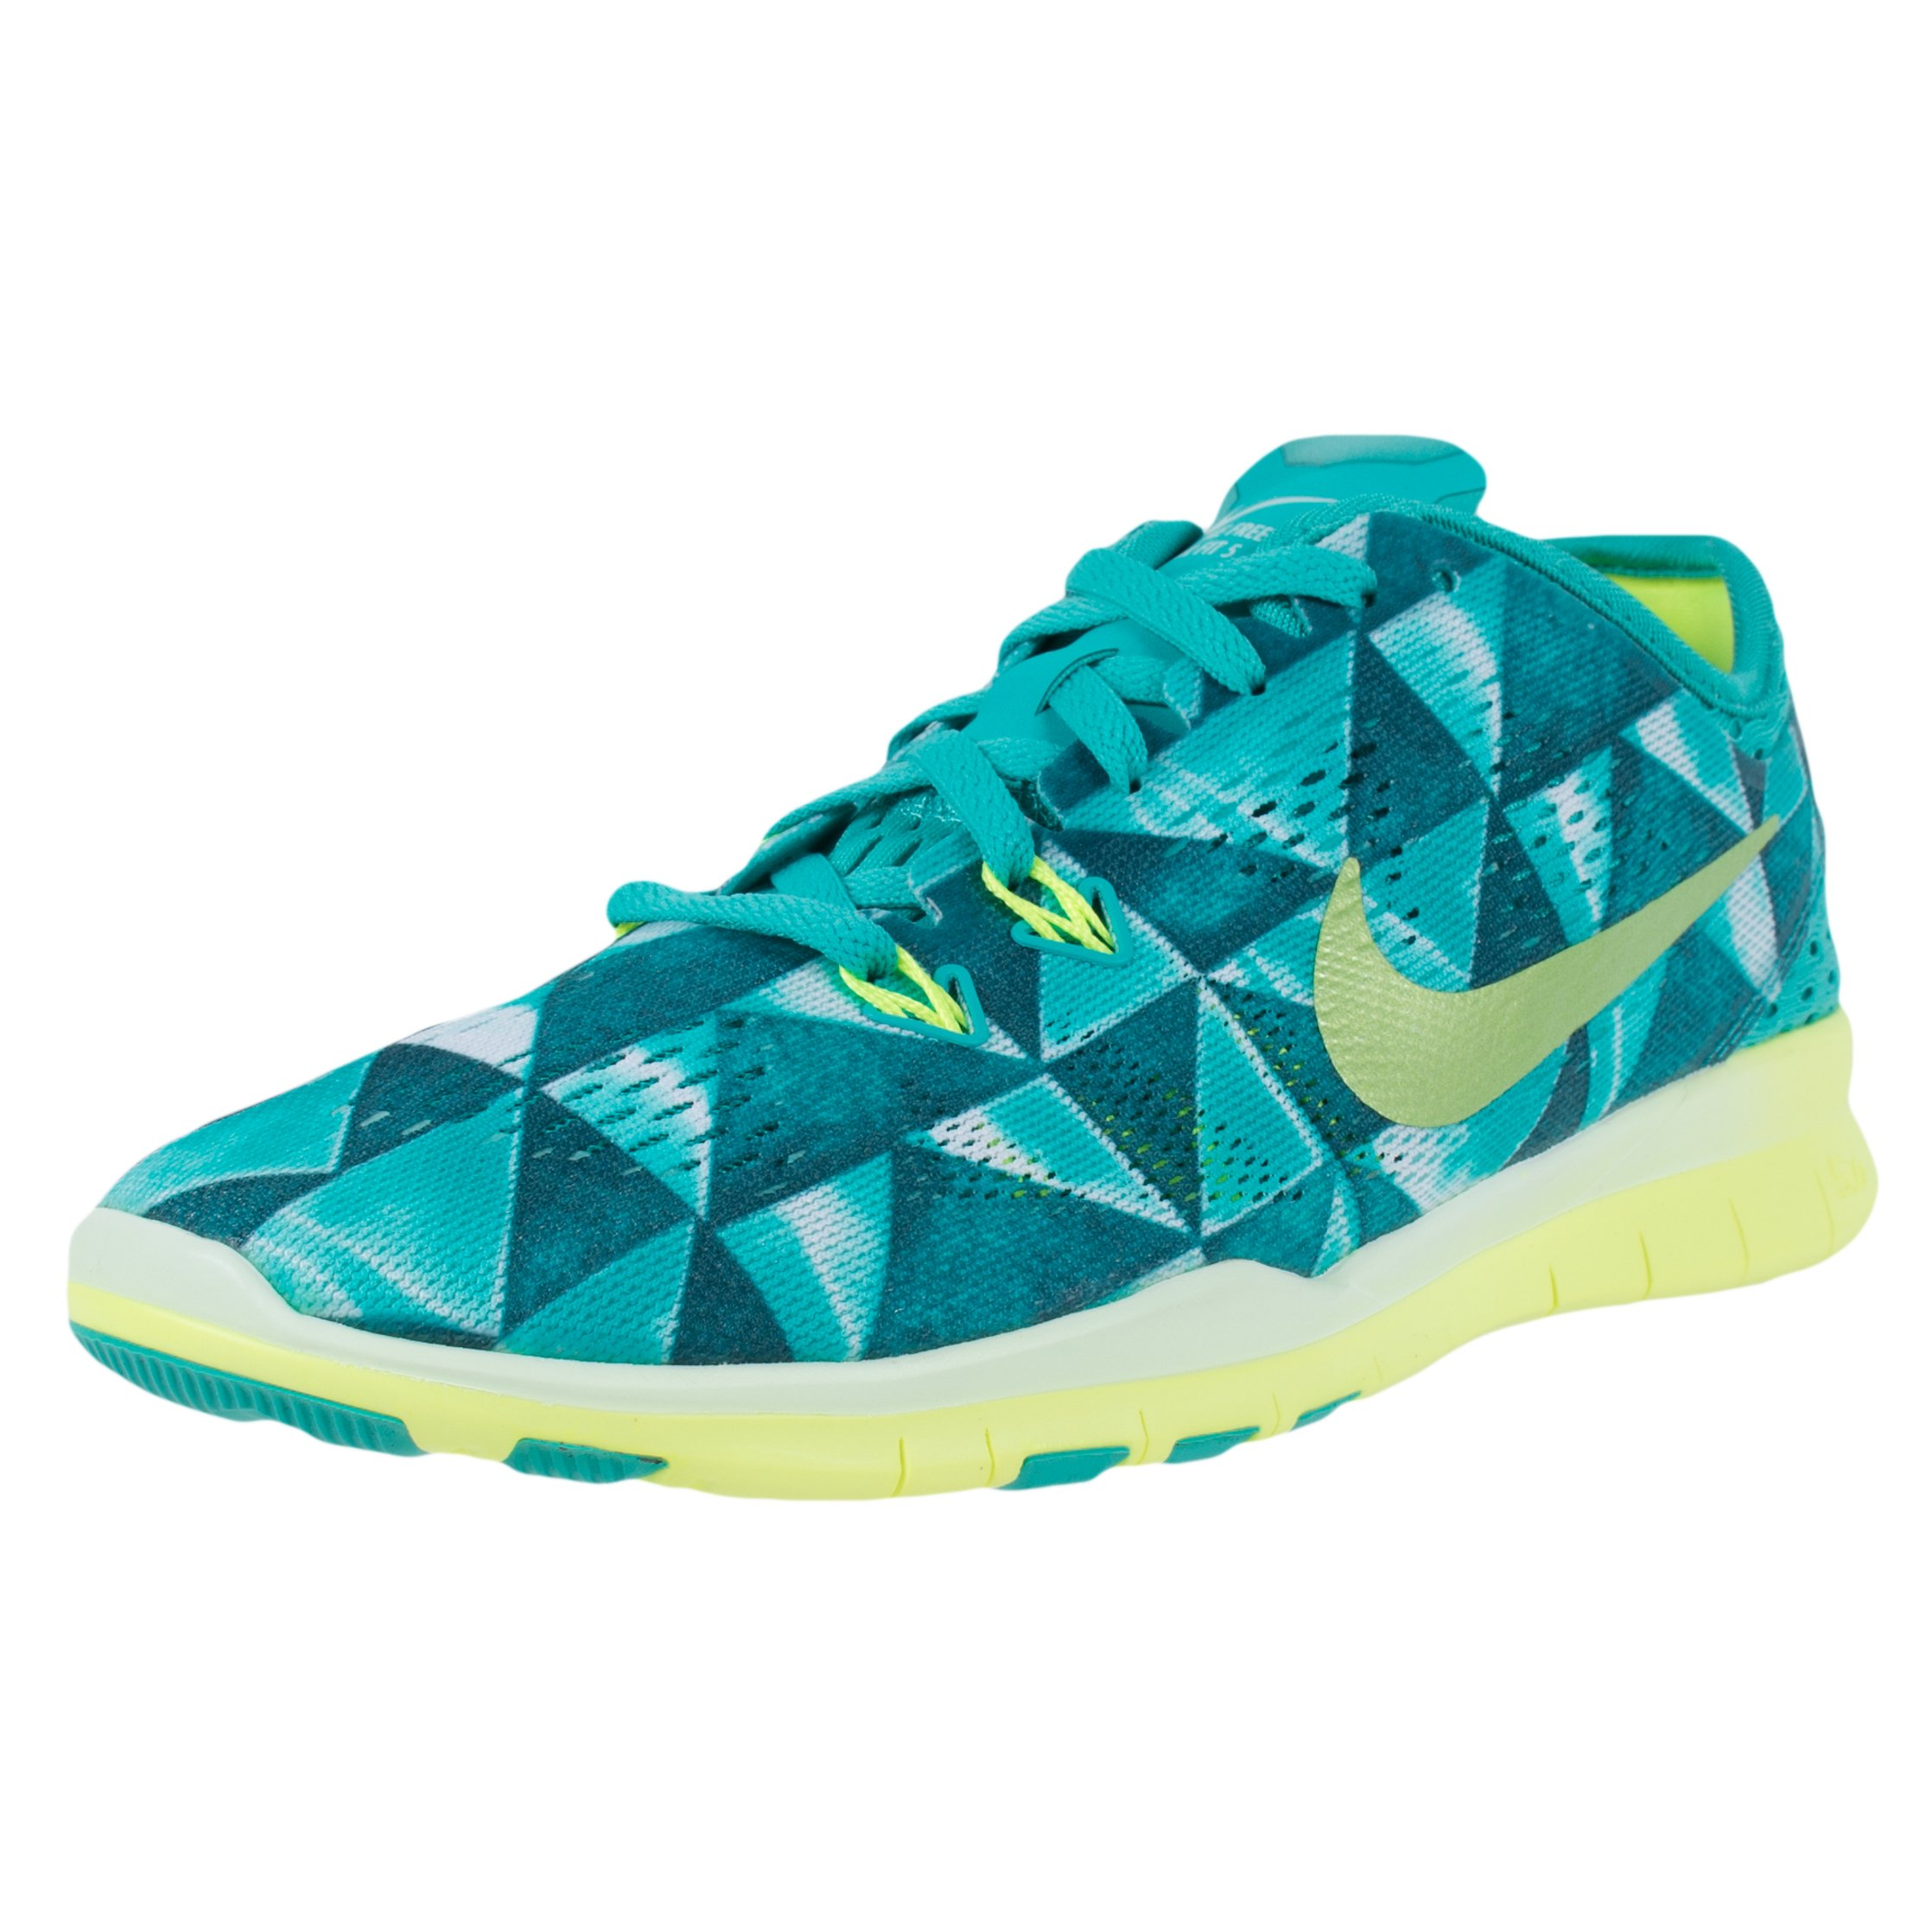 premium selection 9a7af 063f9 Galleon - Nike Women s Free 5.0 TR Fit 5 Print Cross Training Shoes